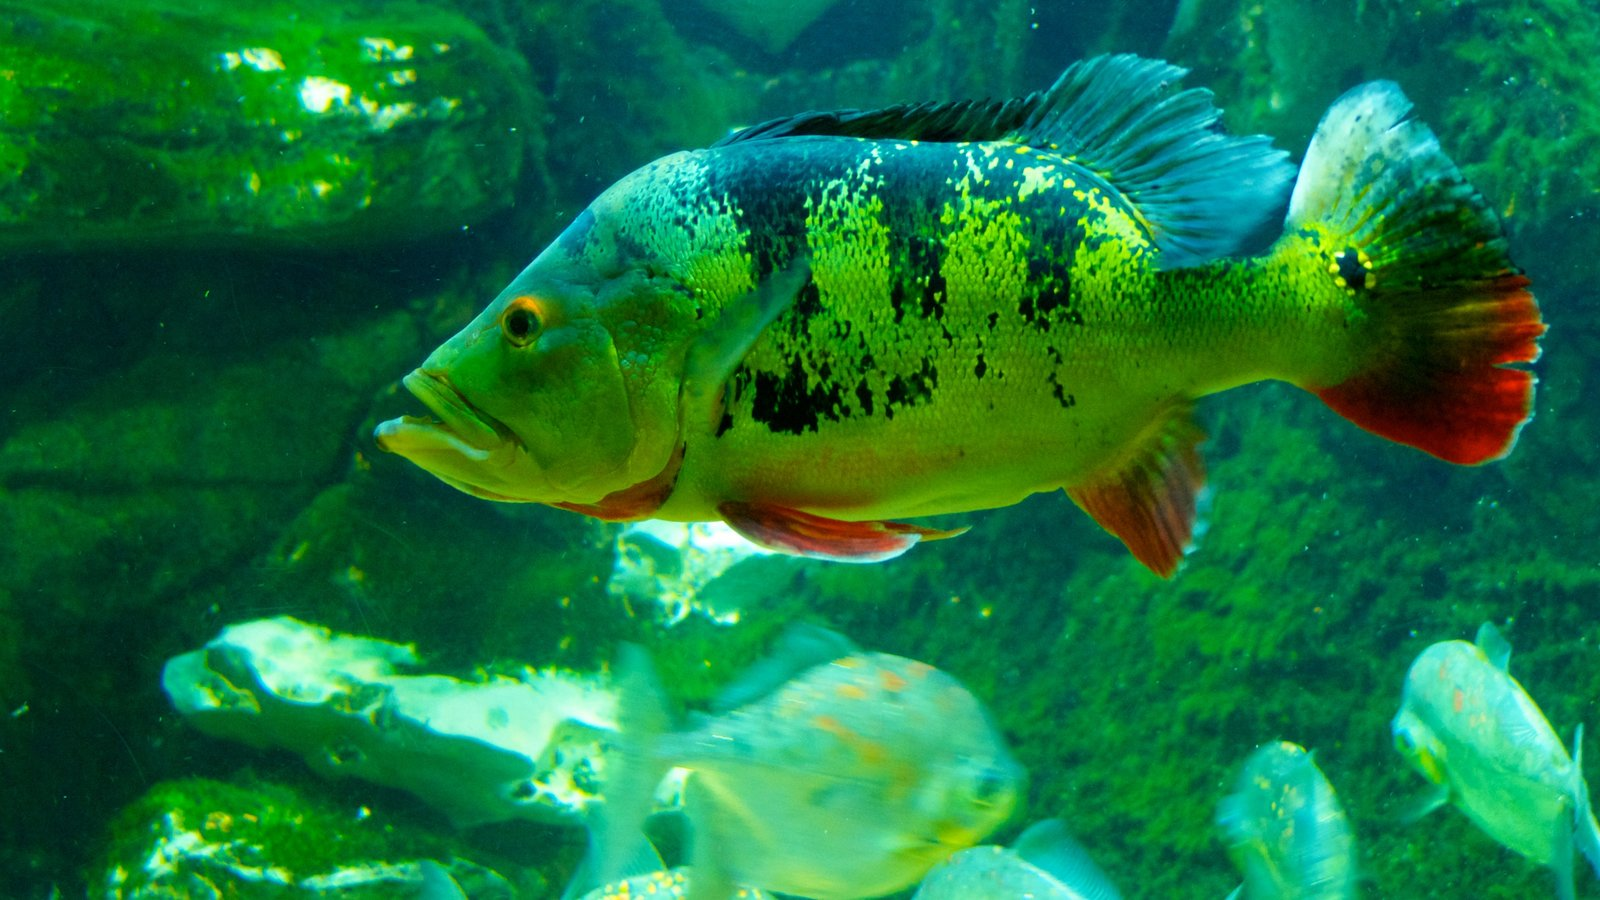 Nashville Zoo which includes marine life, zoo animals and interior views